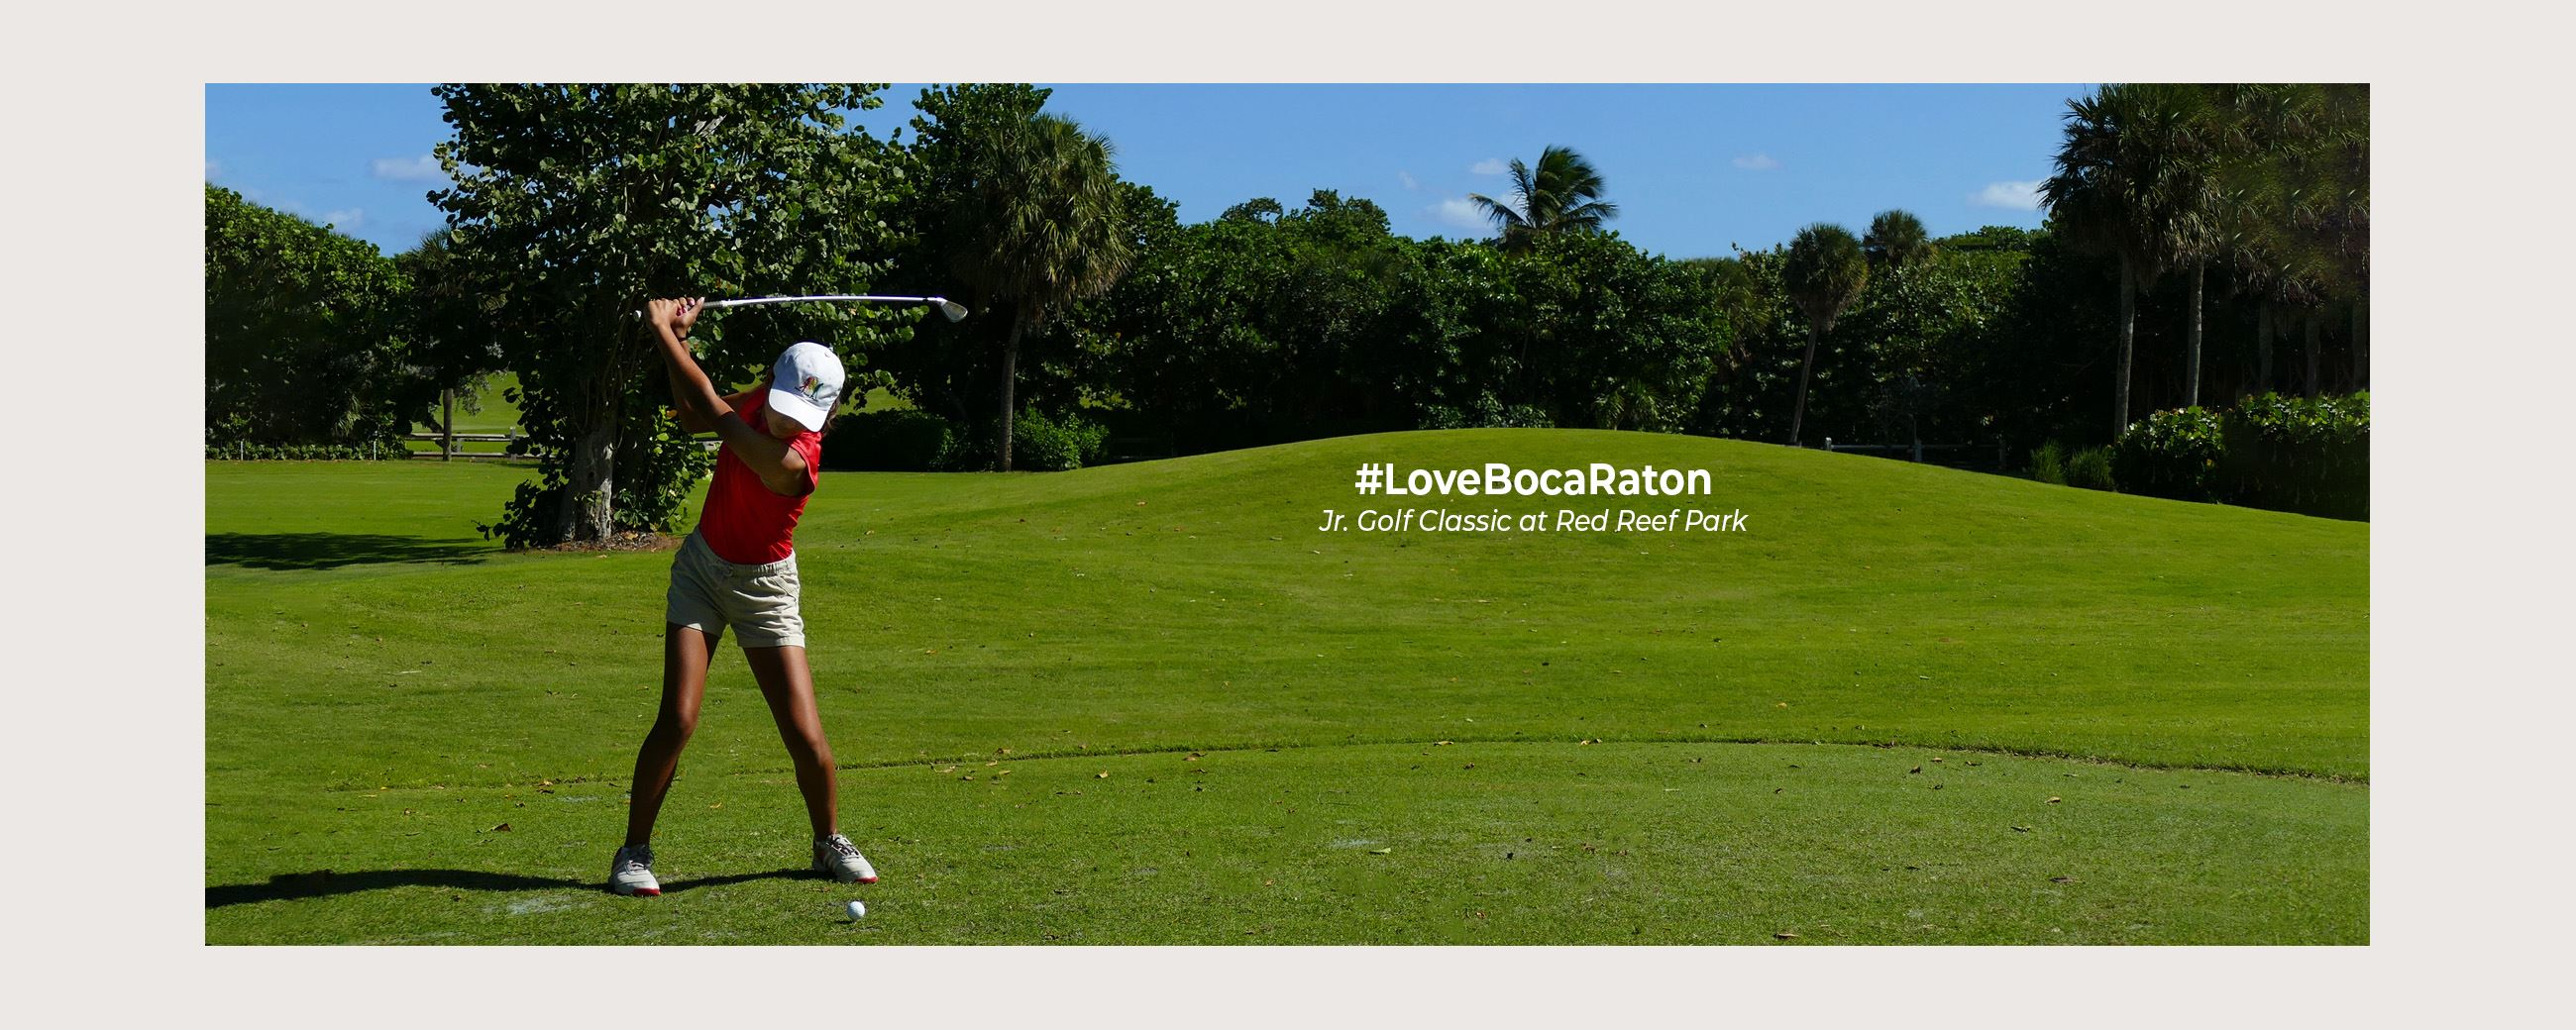 Young girl playing golf at Junior Golf Classic at Red Reef Park. #Love Boca Raton